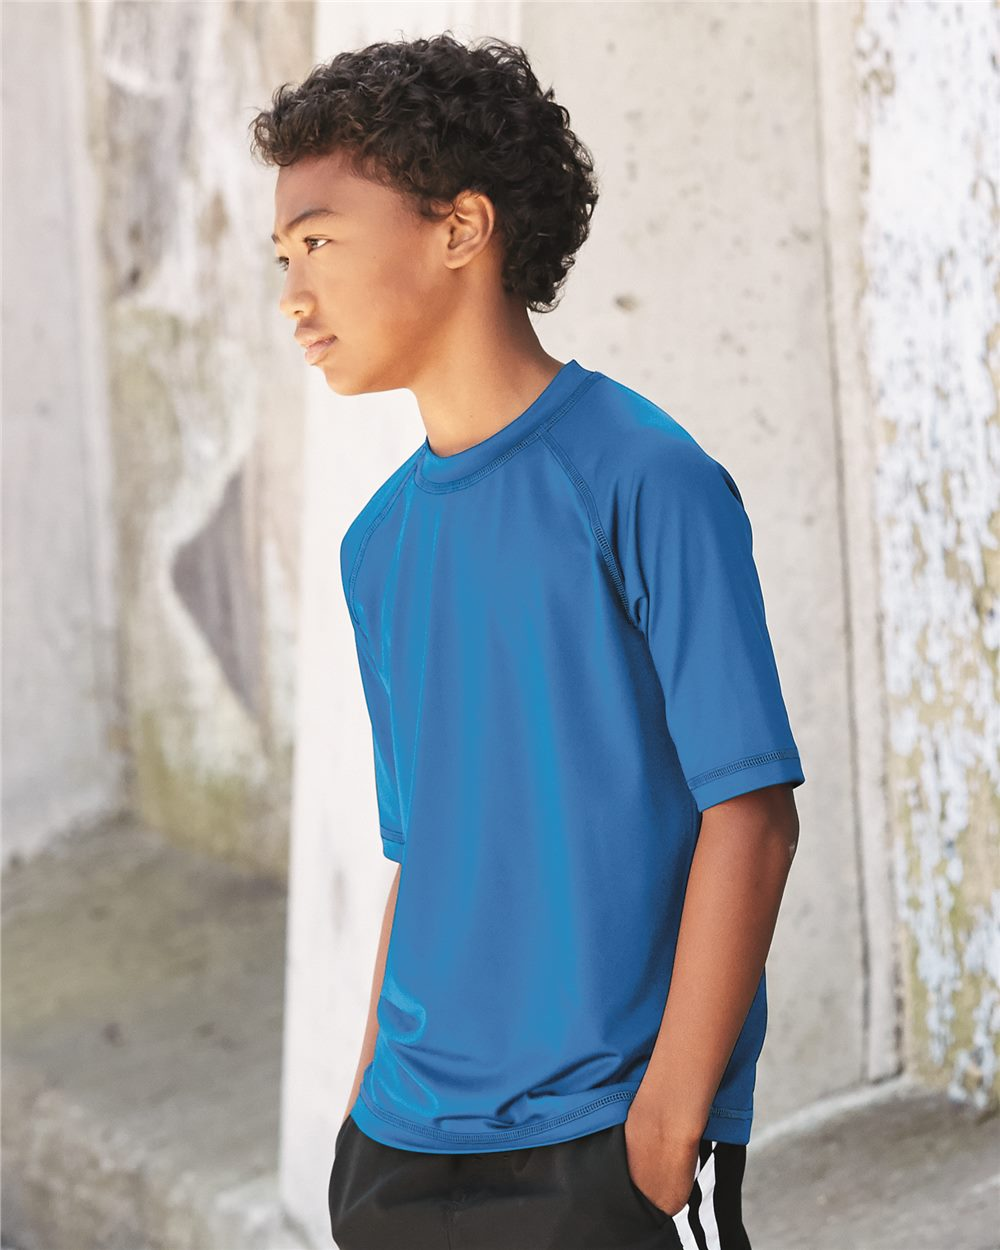 Burnside B4150 - Youth Rash Guard Shirt